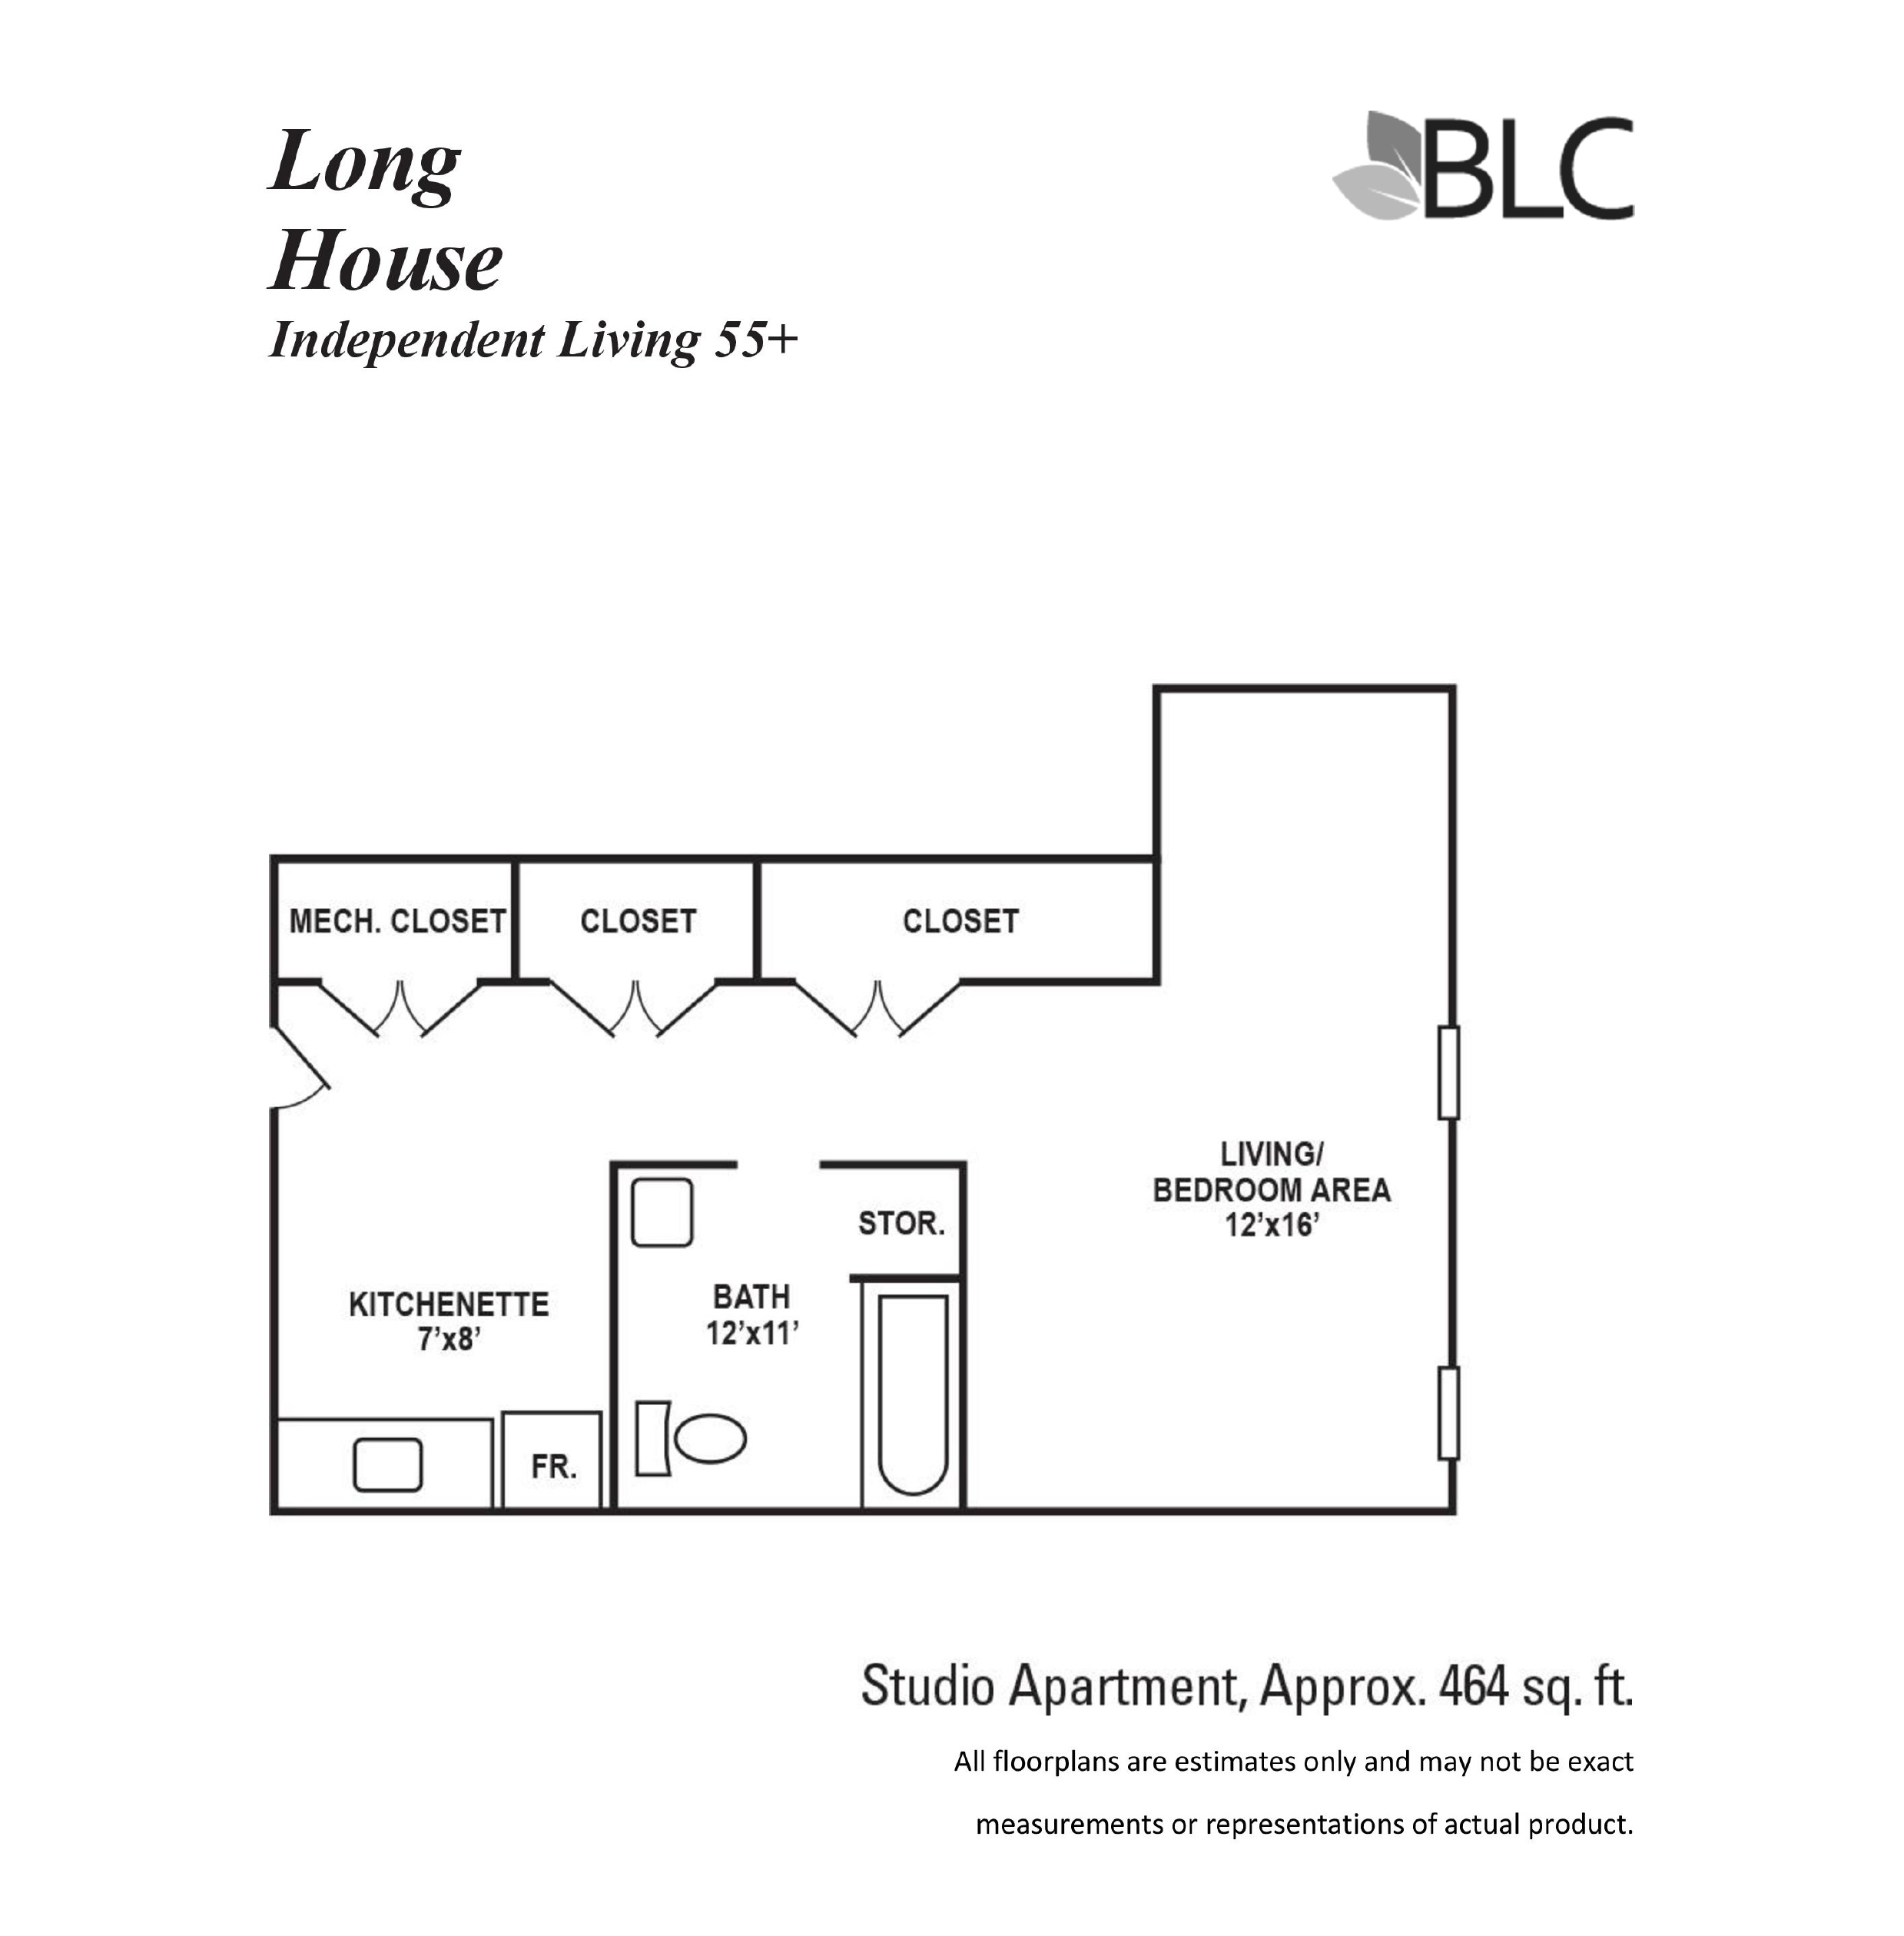 Long House Studio Apartment